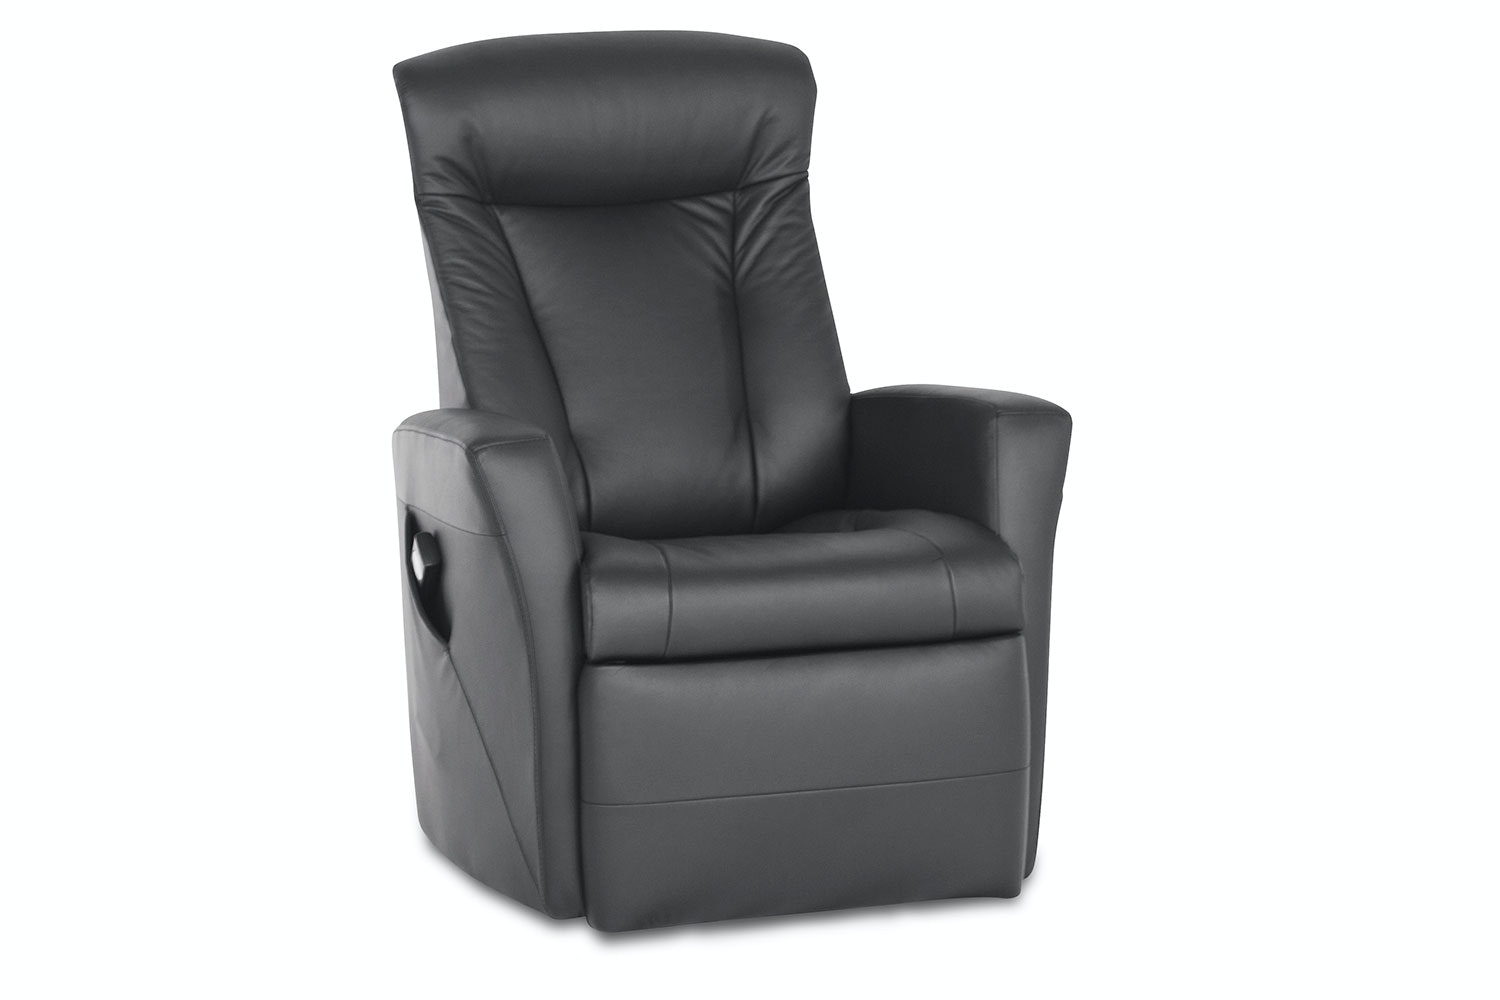 Prince Leather Multi Function Recliner Chair - Standard - Prime - IMG